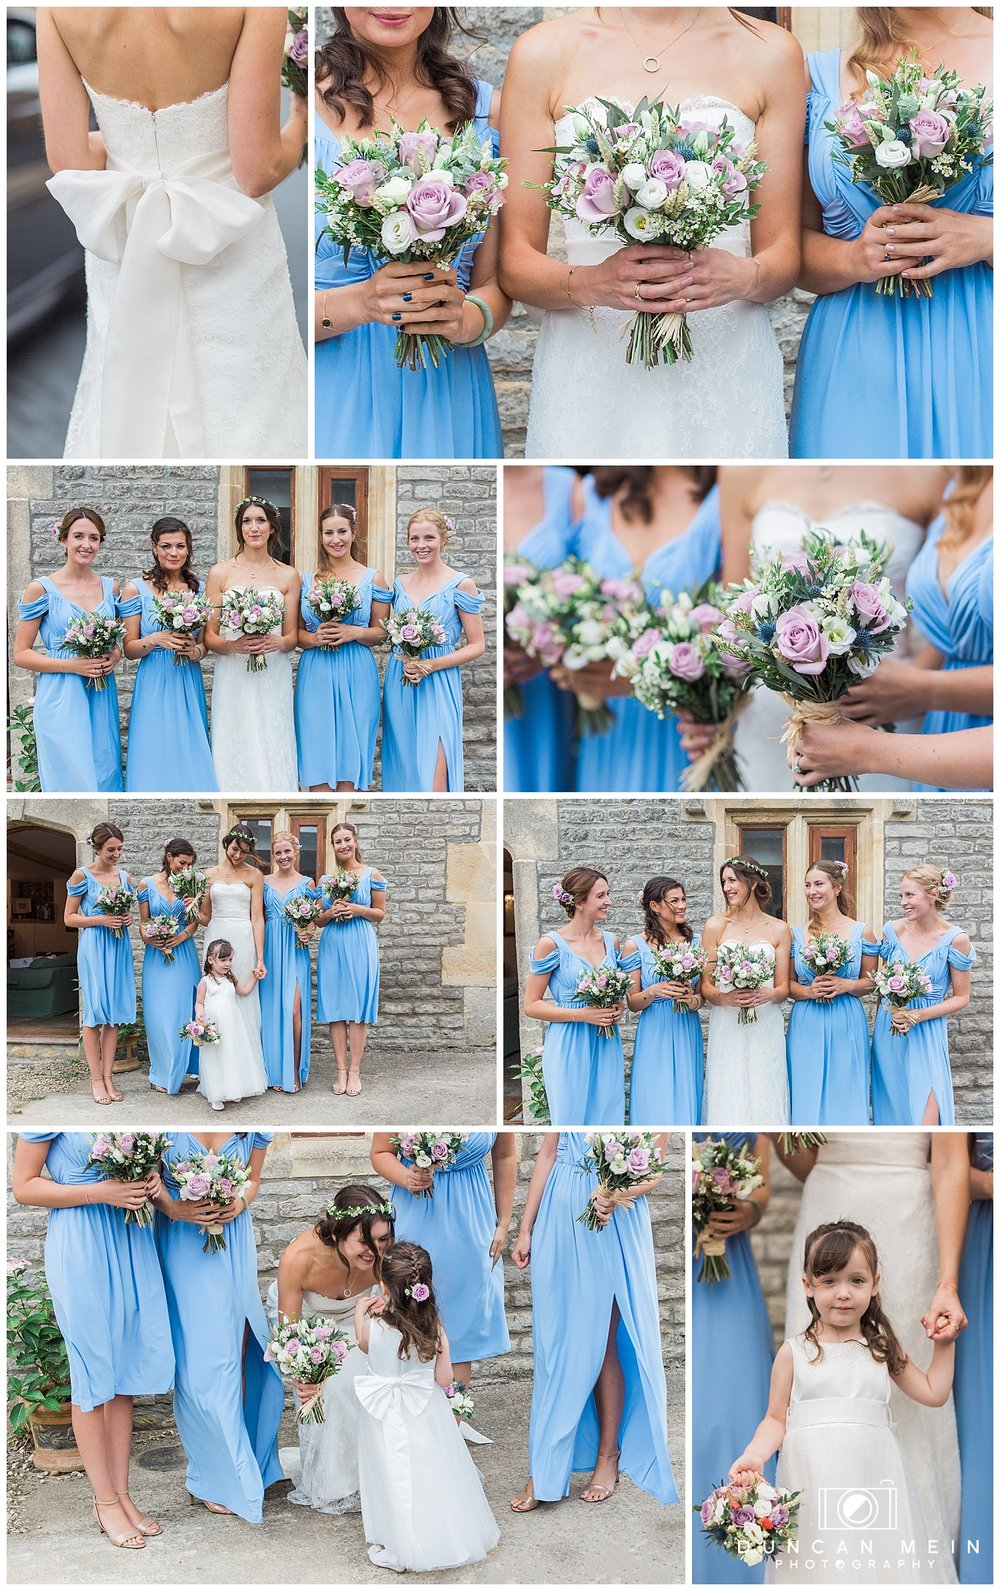 Rustic Barn Wedding in Somerset - Bouquets and Bridesmaids